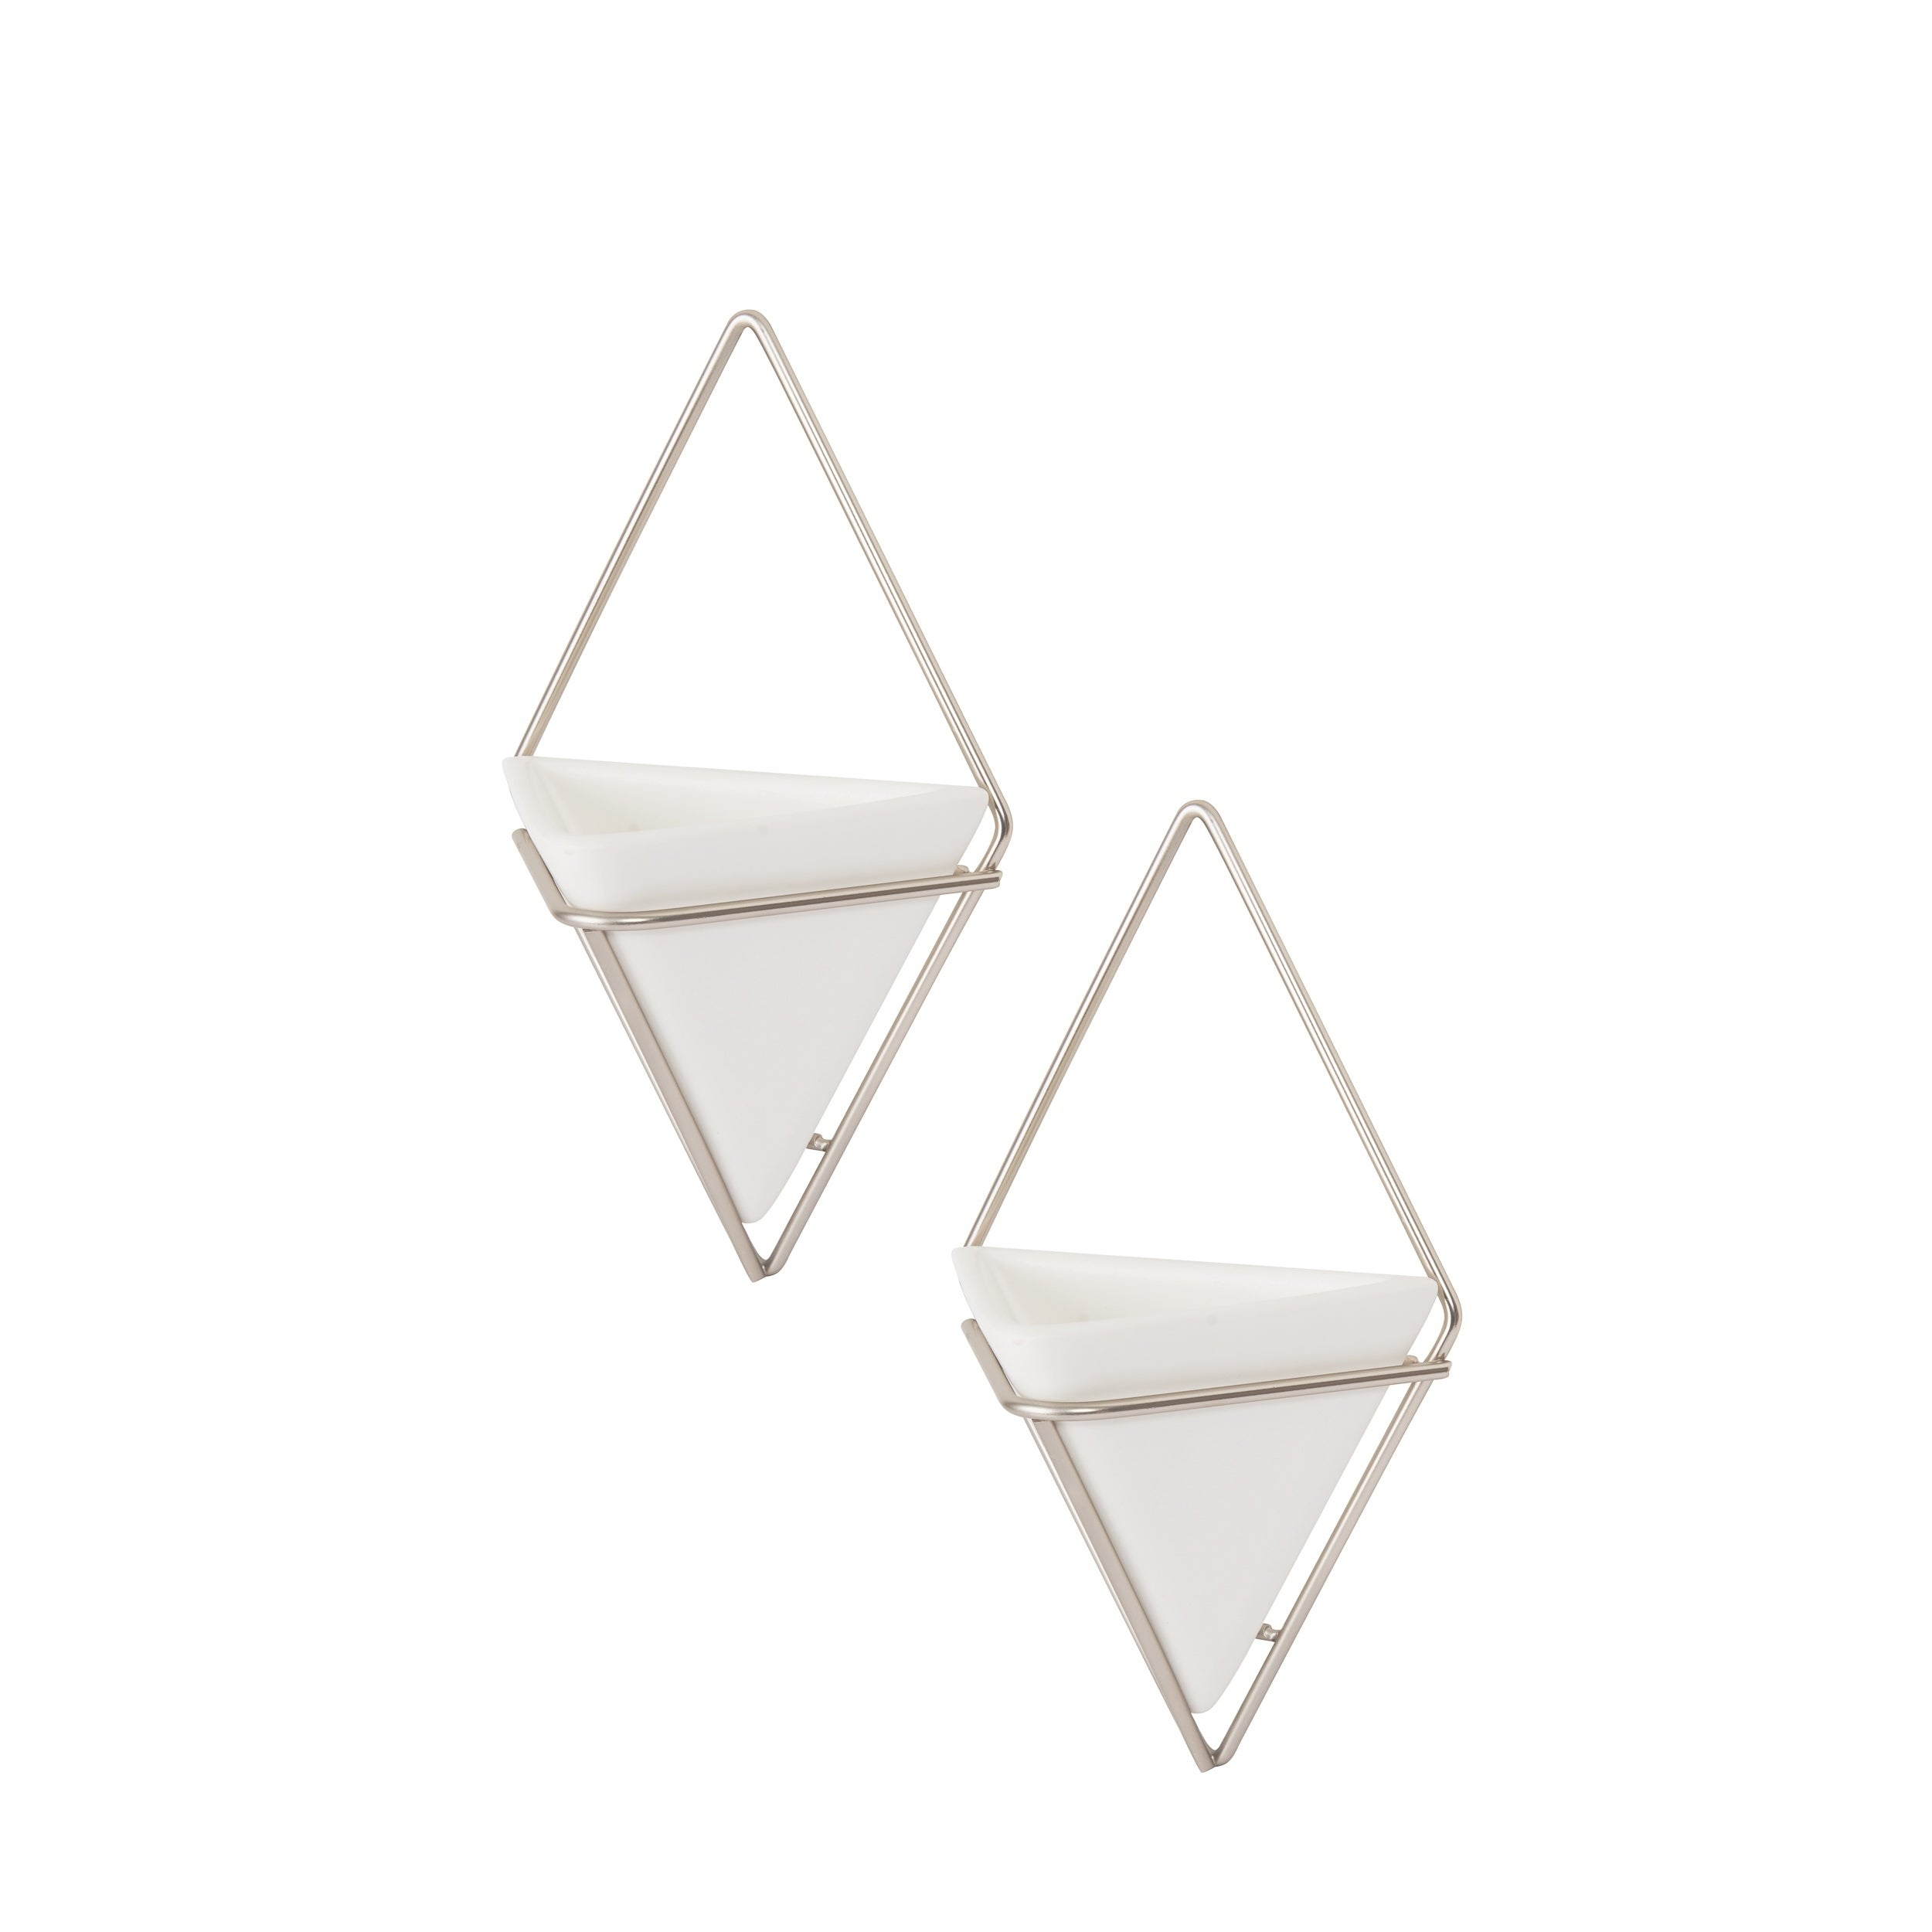 Umbra Trigg Hanging Planter & Wall Decor (Set Of 2) with regard to 2 Piece Trigg Wall Decor Sets (Set of 2) (Image 25 of 30)